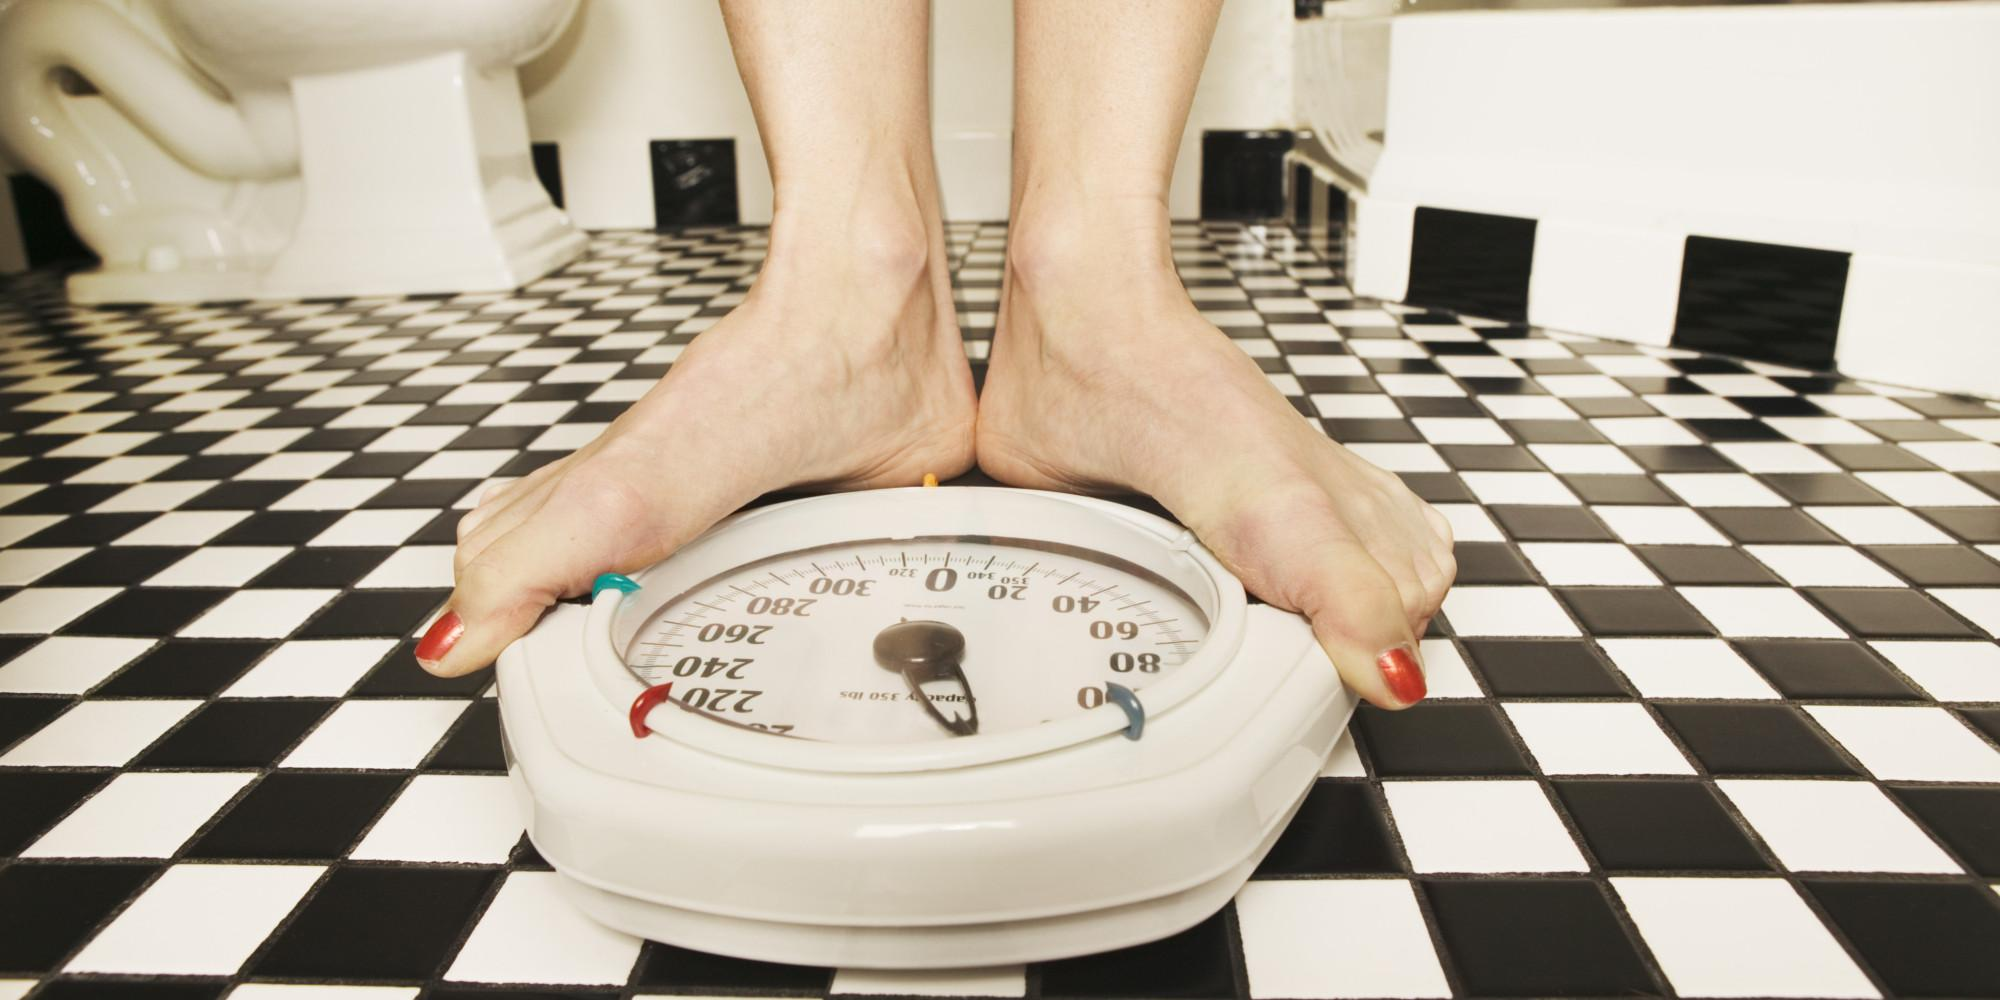 Woman weighing herself on a bathroom scale